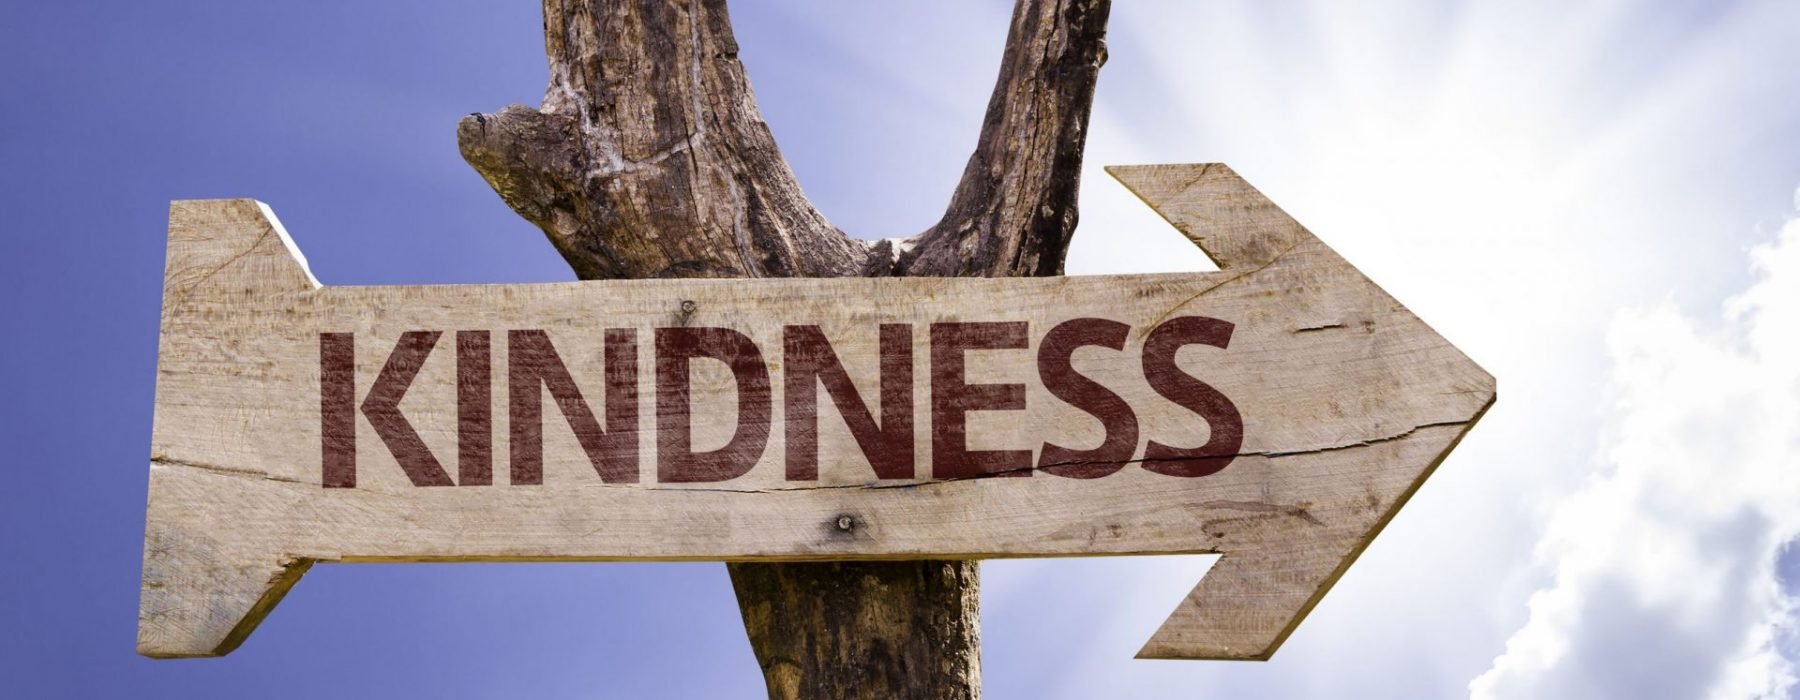 What we need is just kindness